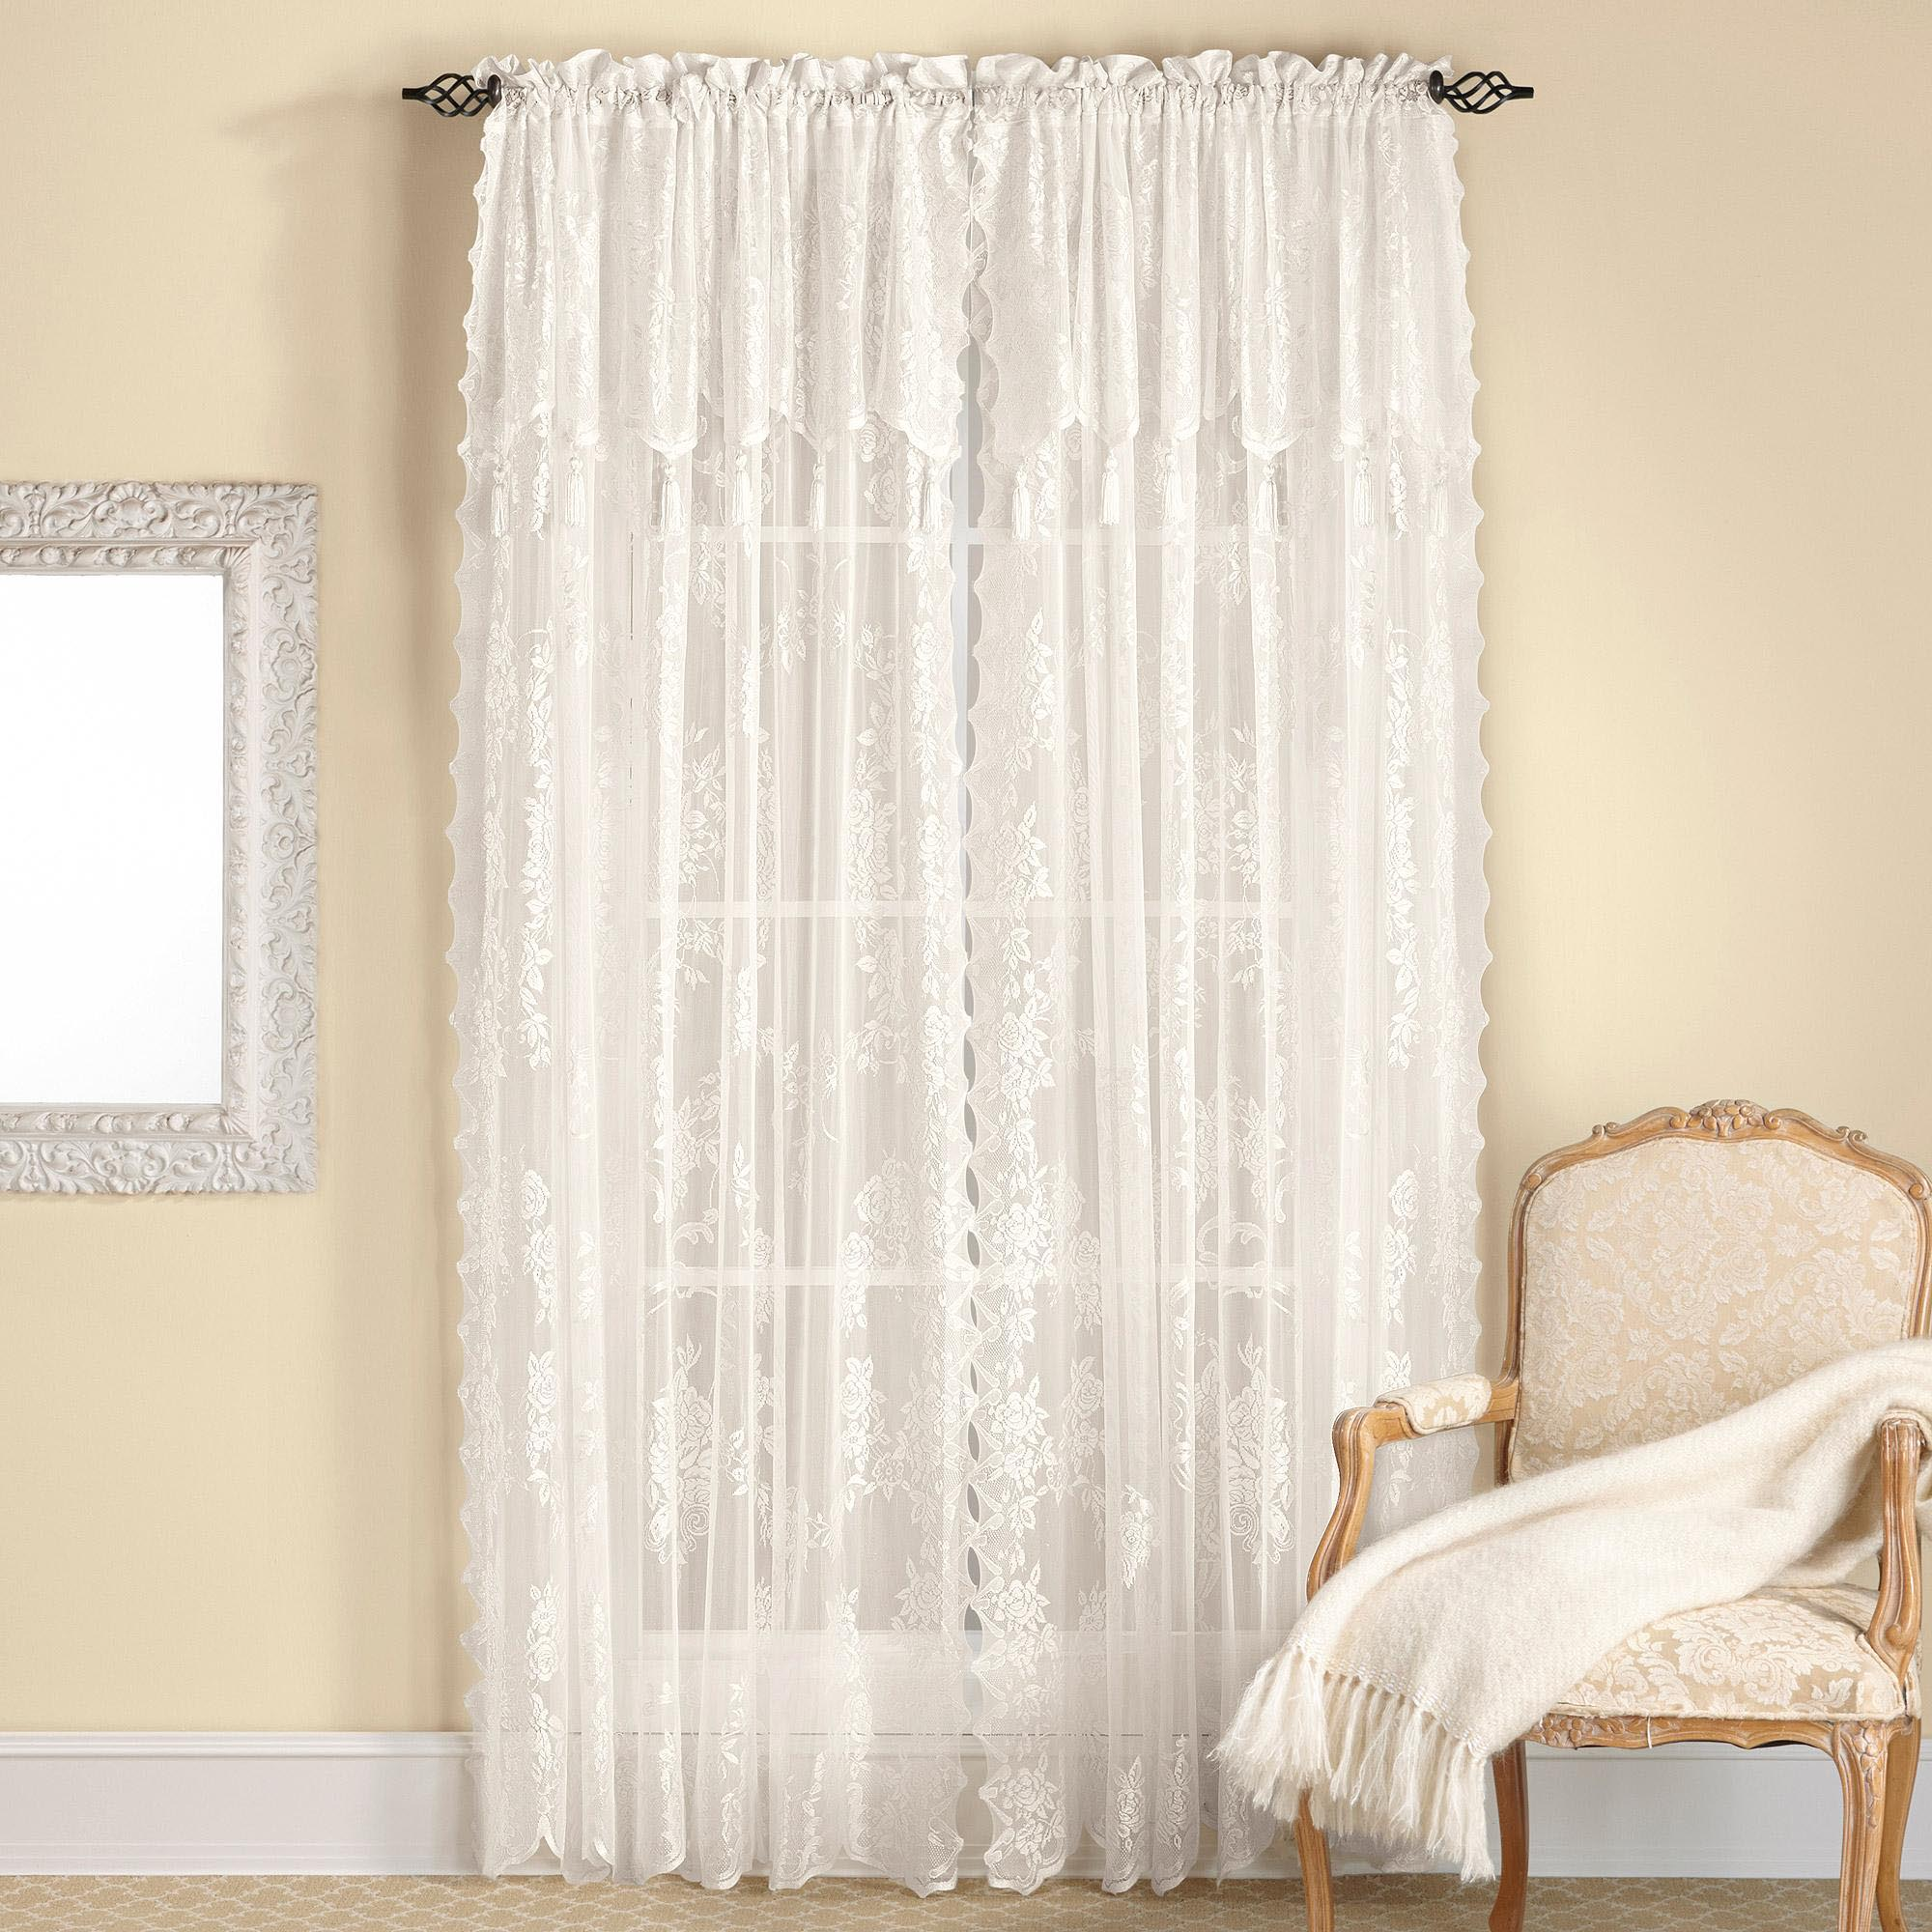 Accessories Curtain Valances For Living Room Kids Emilee